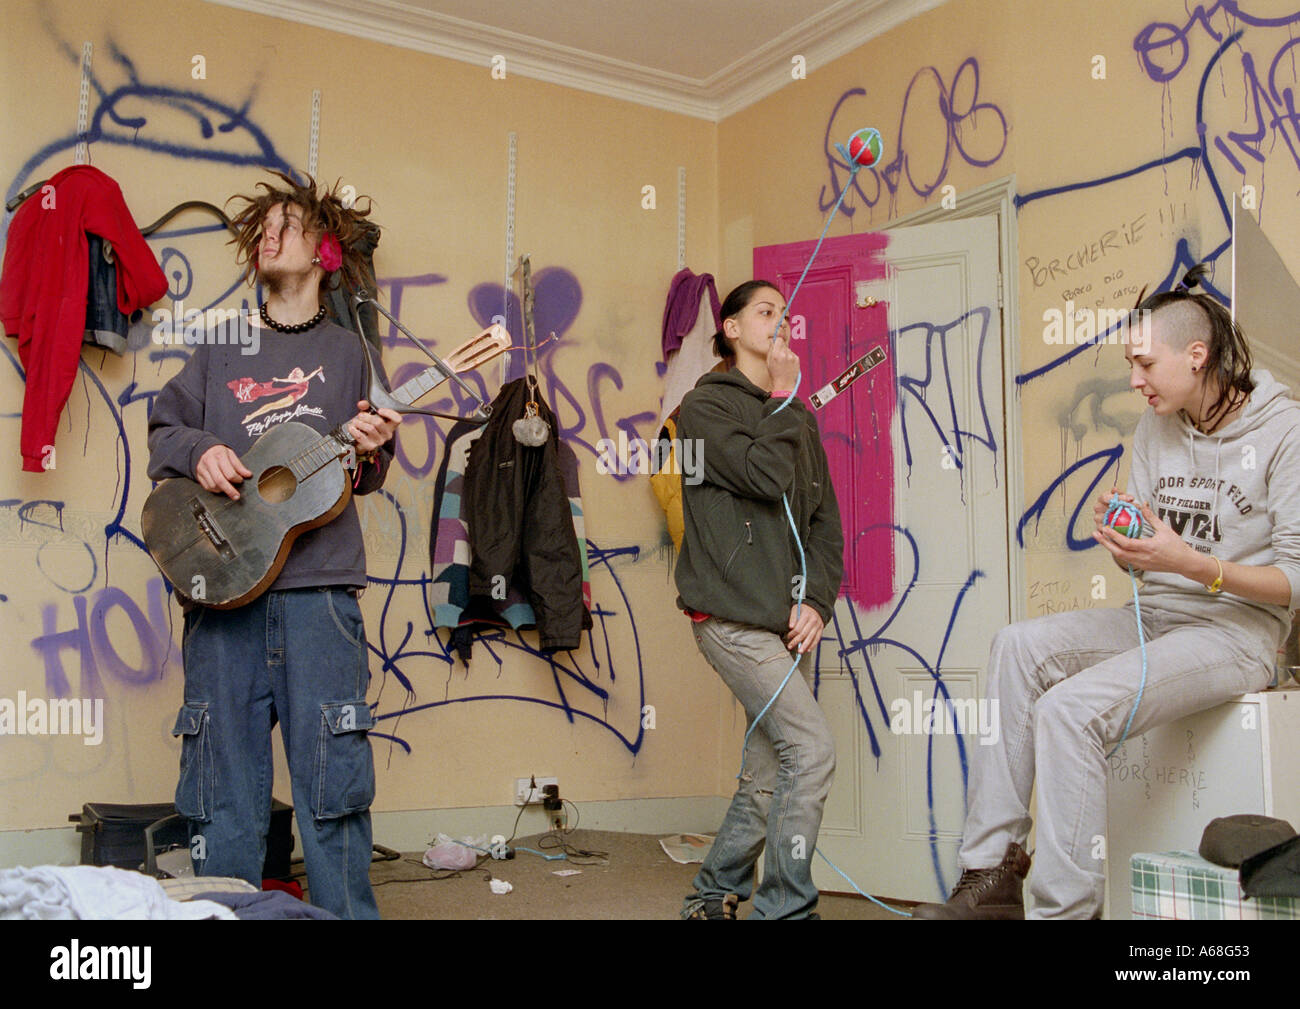 Group of teenaged boys and girls fooling around playing instruments in their room in south London squat. - Stock Image